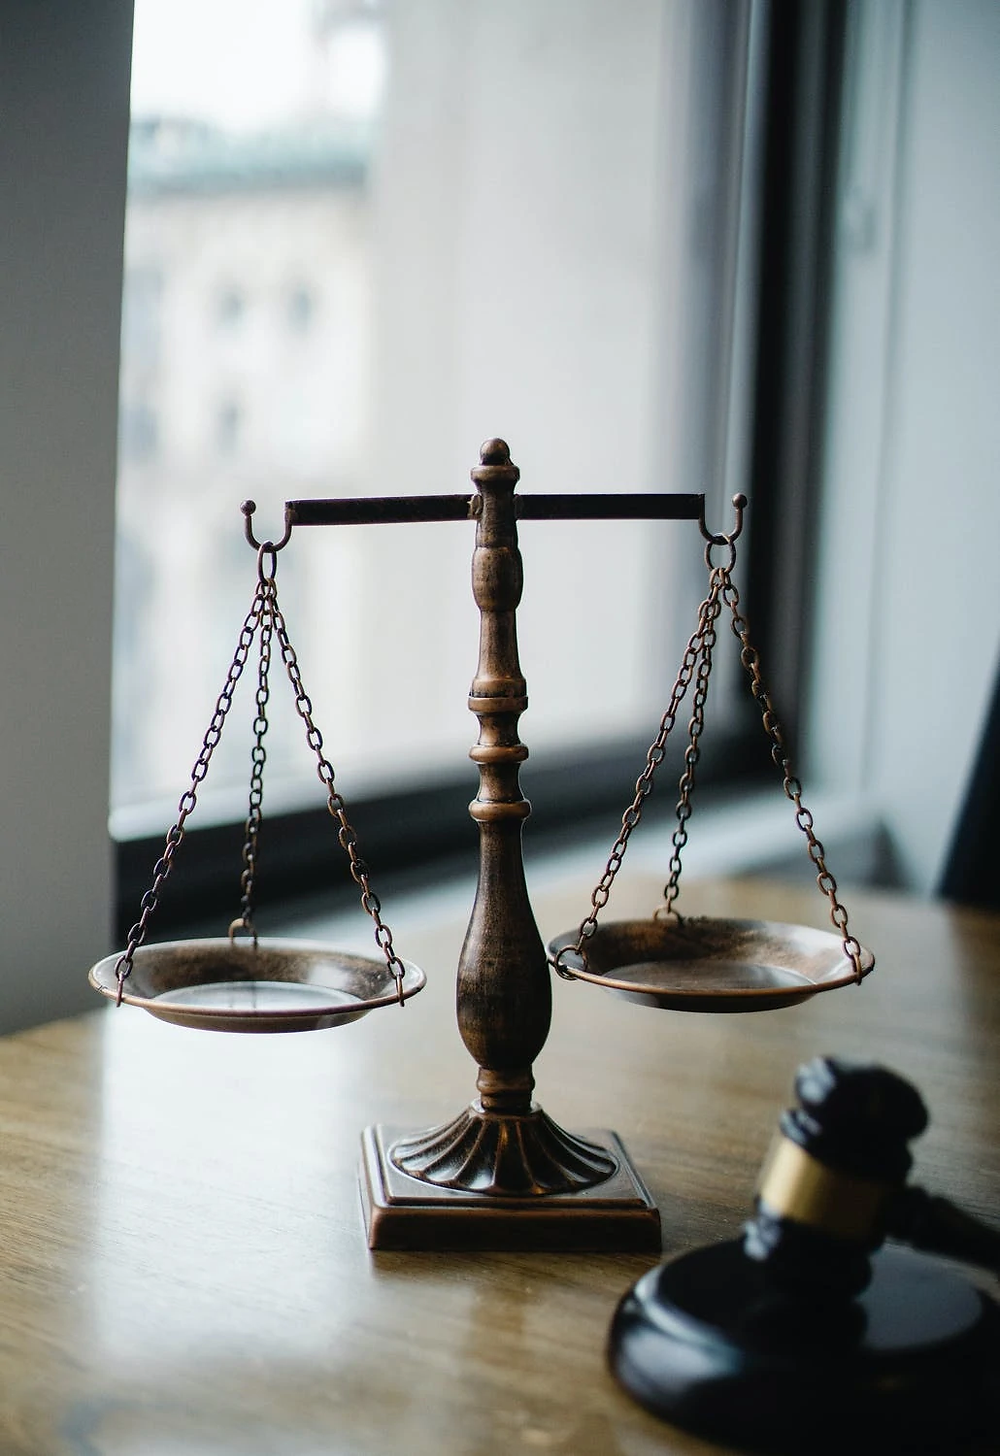 Balance of Justice and Laws